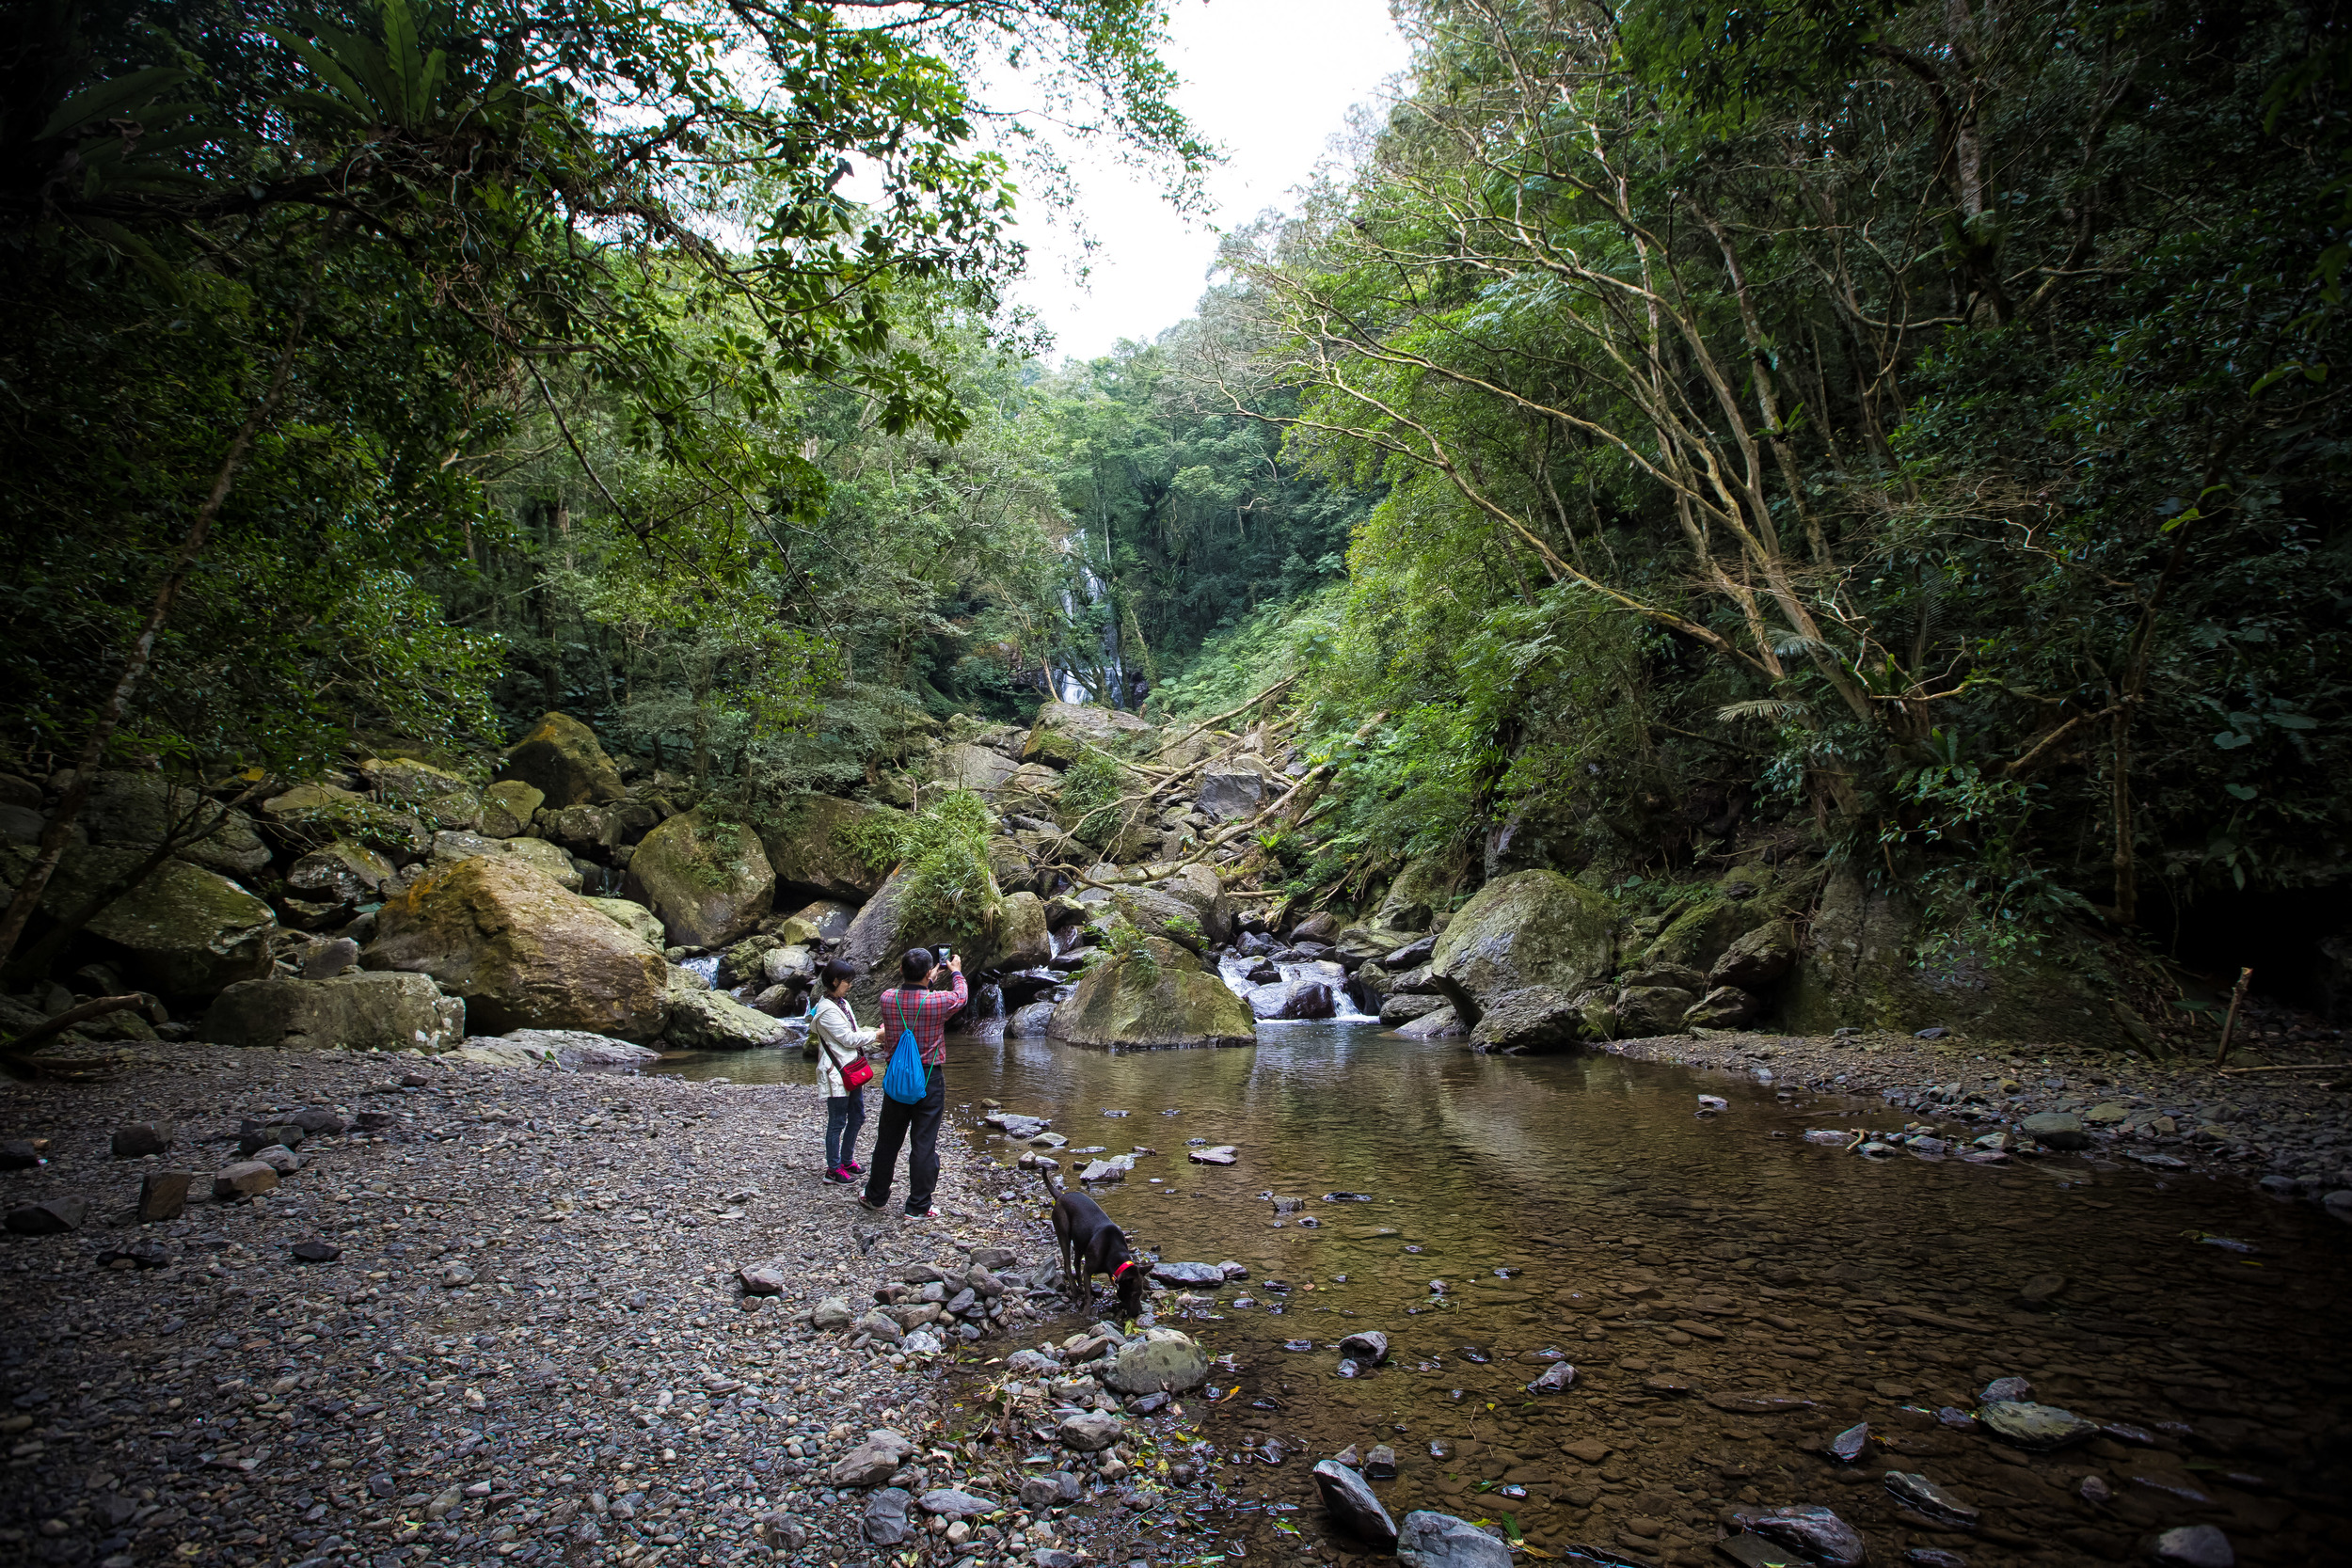 - Taiwanese hikers at the stream below the waterfall